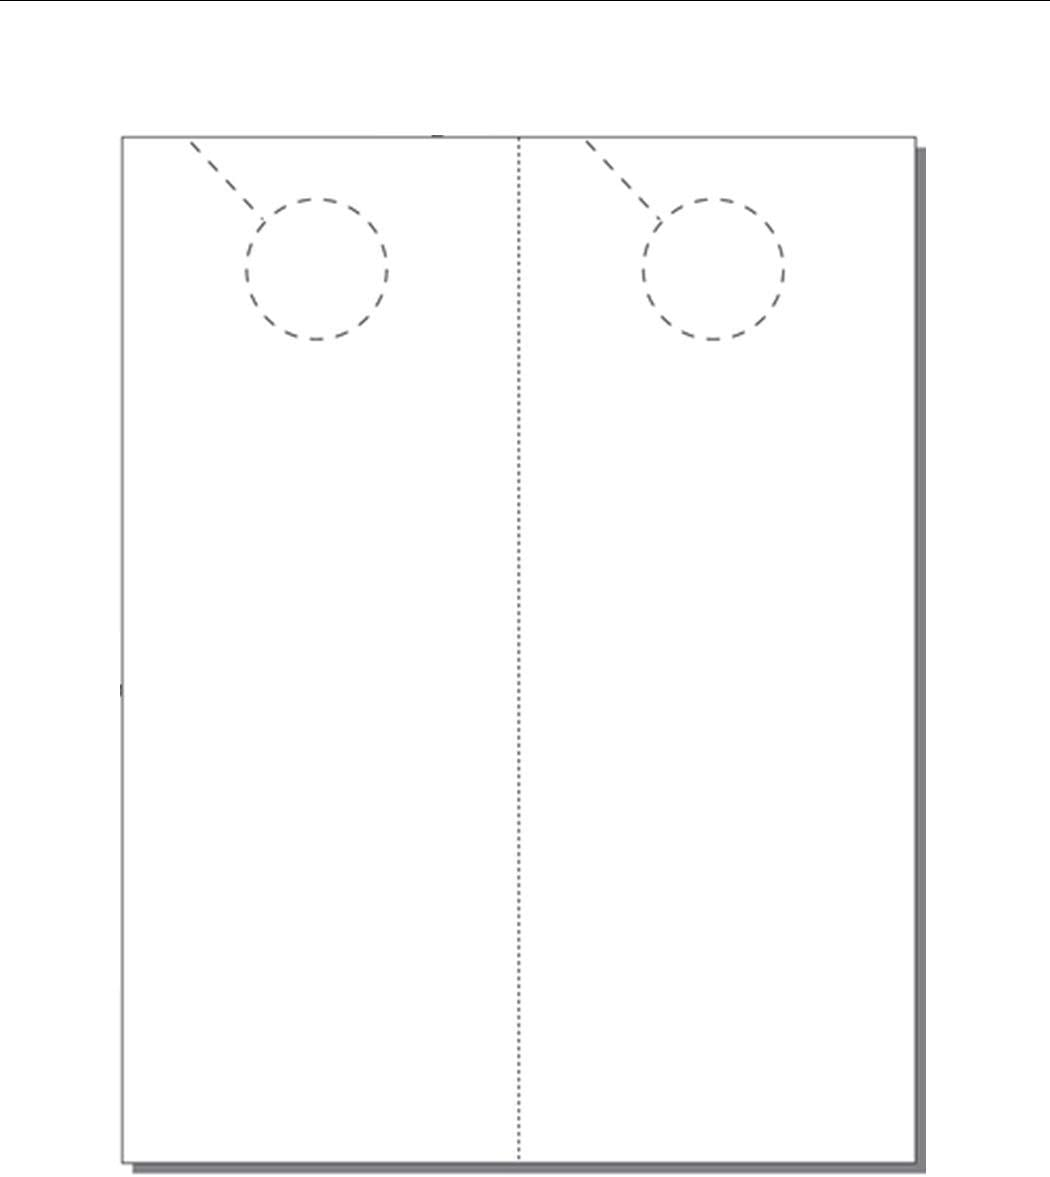 4.25 x 11 Print-Ready 250 Sheets Perforated for Separation with 1.5 Holes 2-UP on 8.5 x 11 White 67-lb Vellum Door Hangers